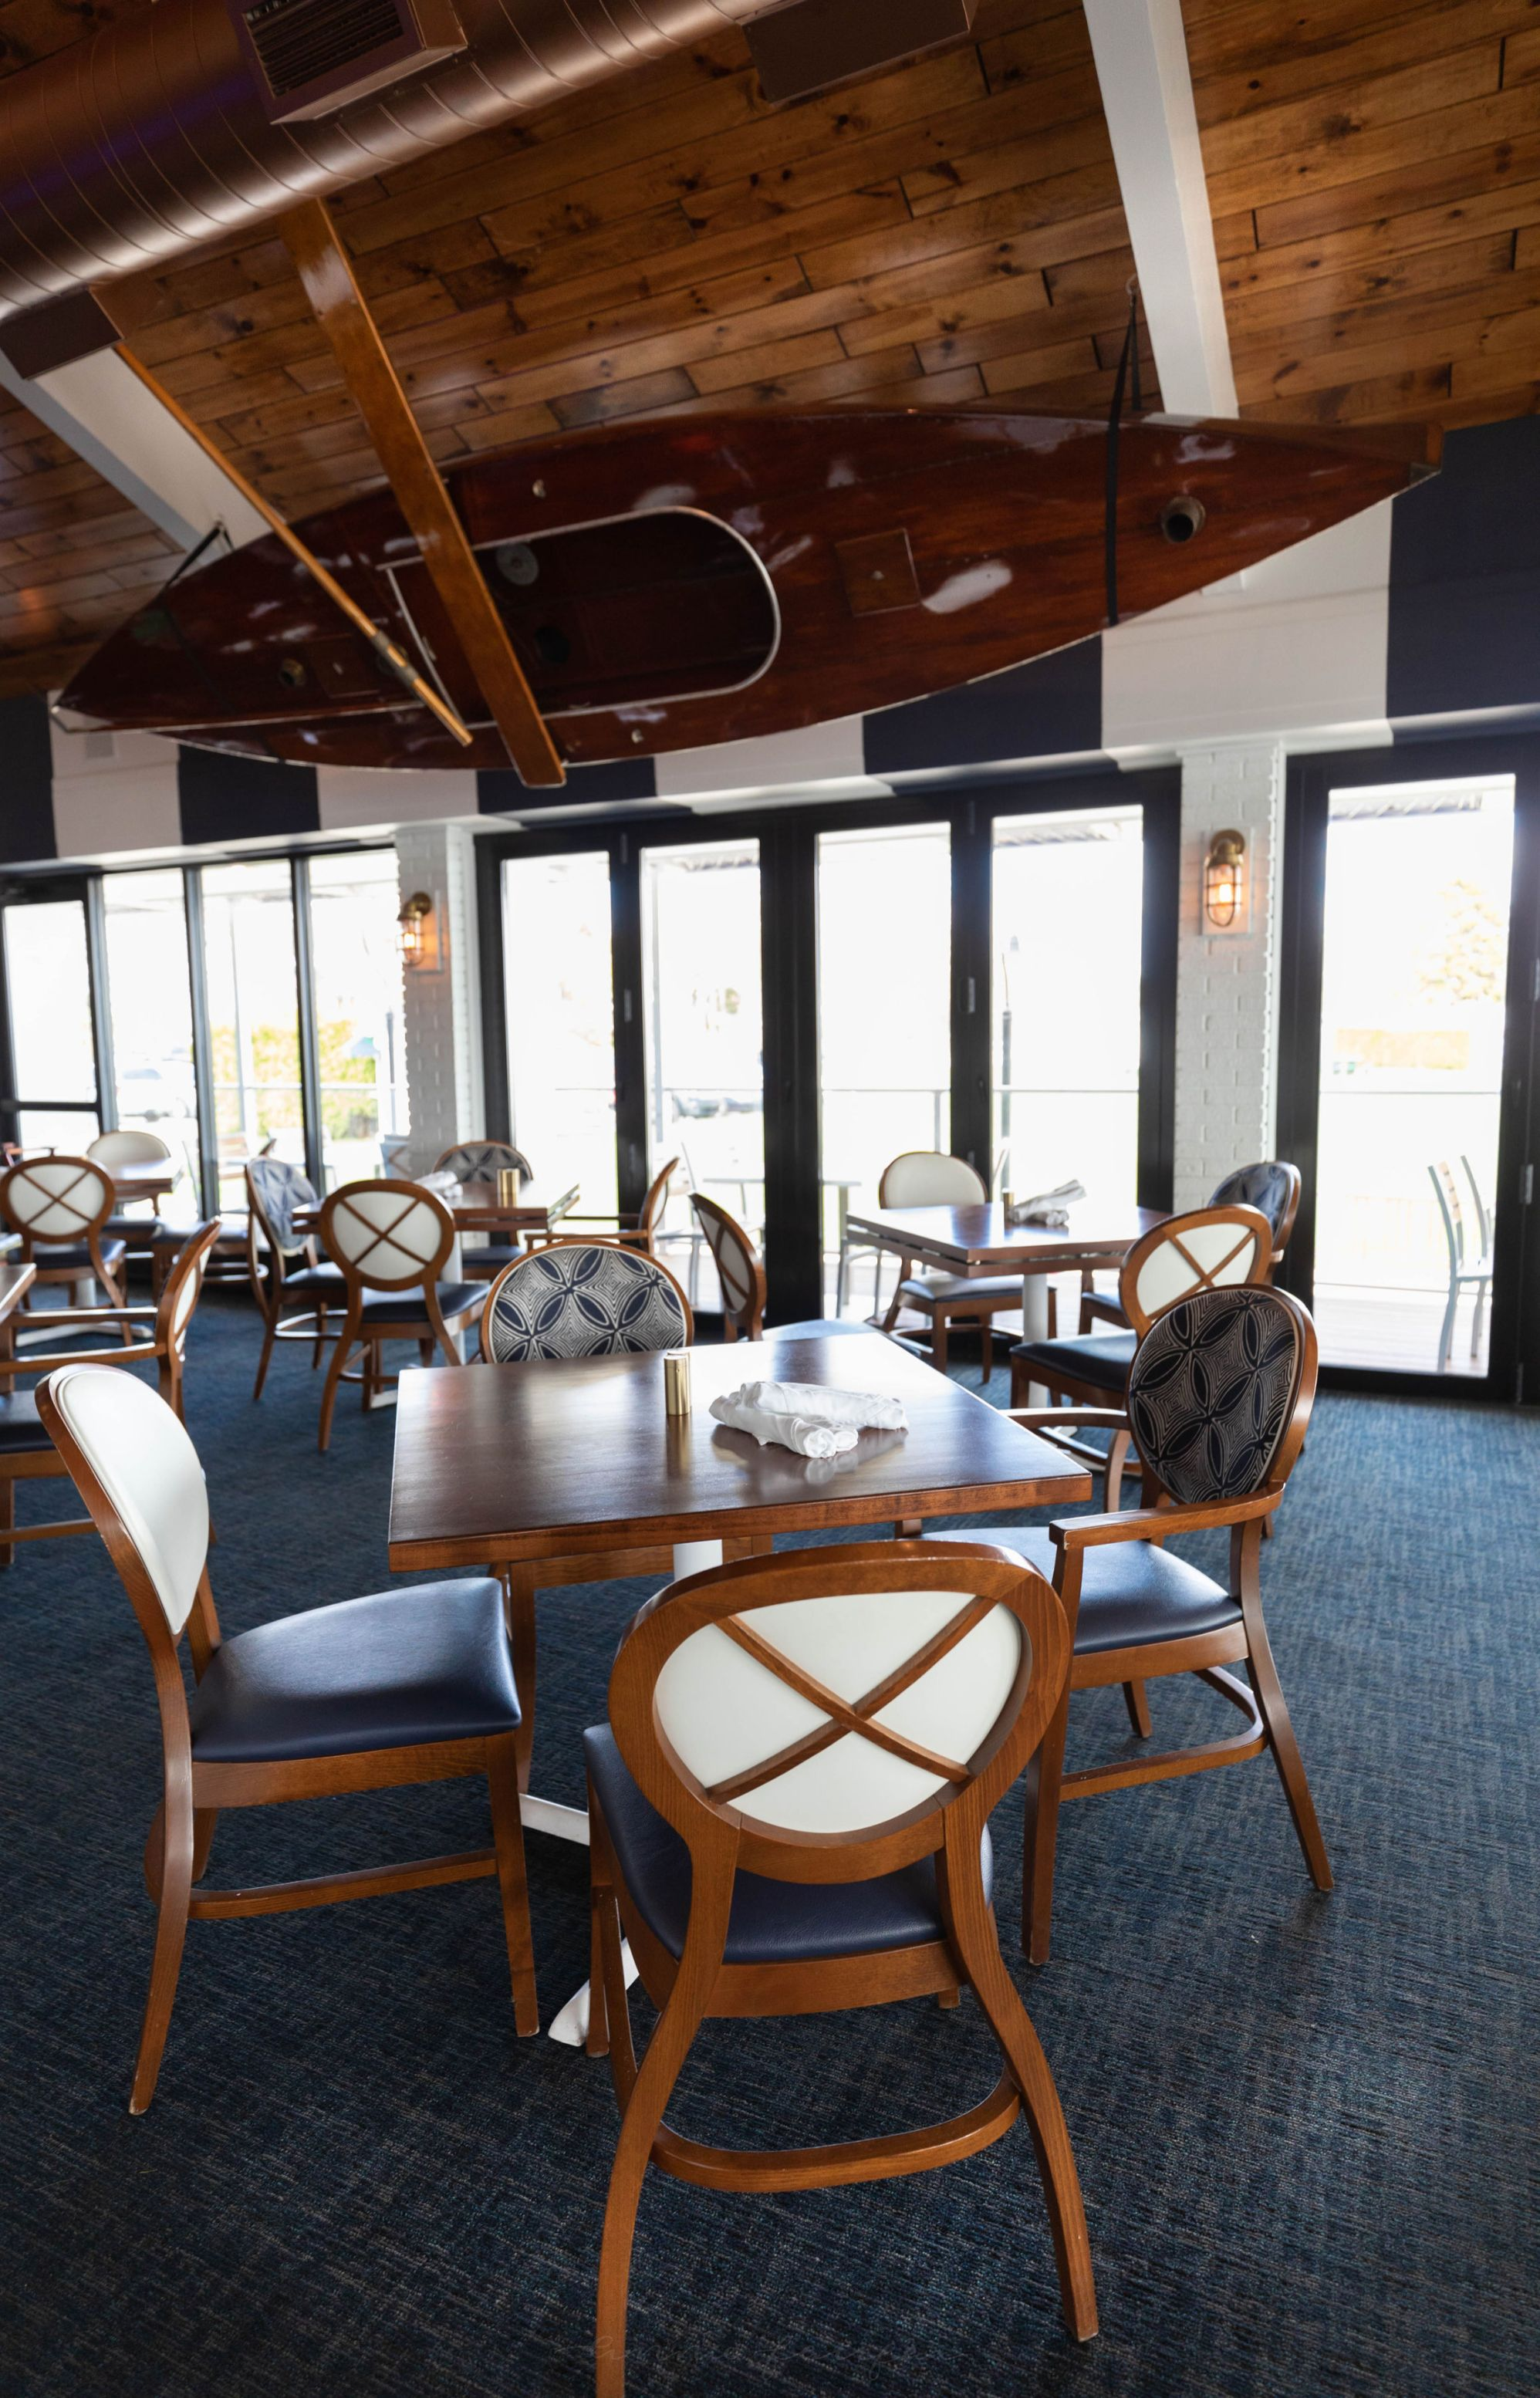 Luxury Restaurants of the World: Stafford's Pier Restaruant Harbor Springs Michigan